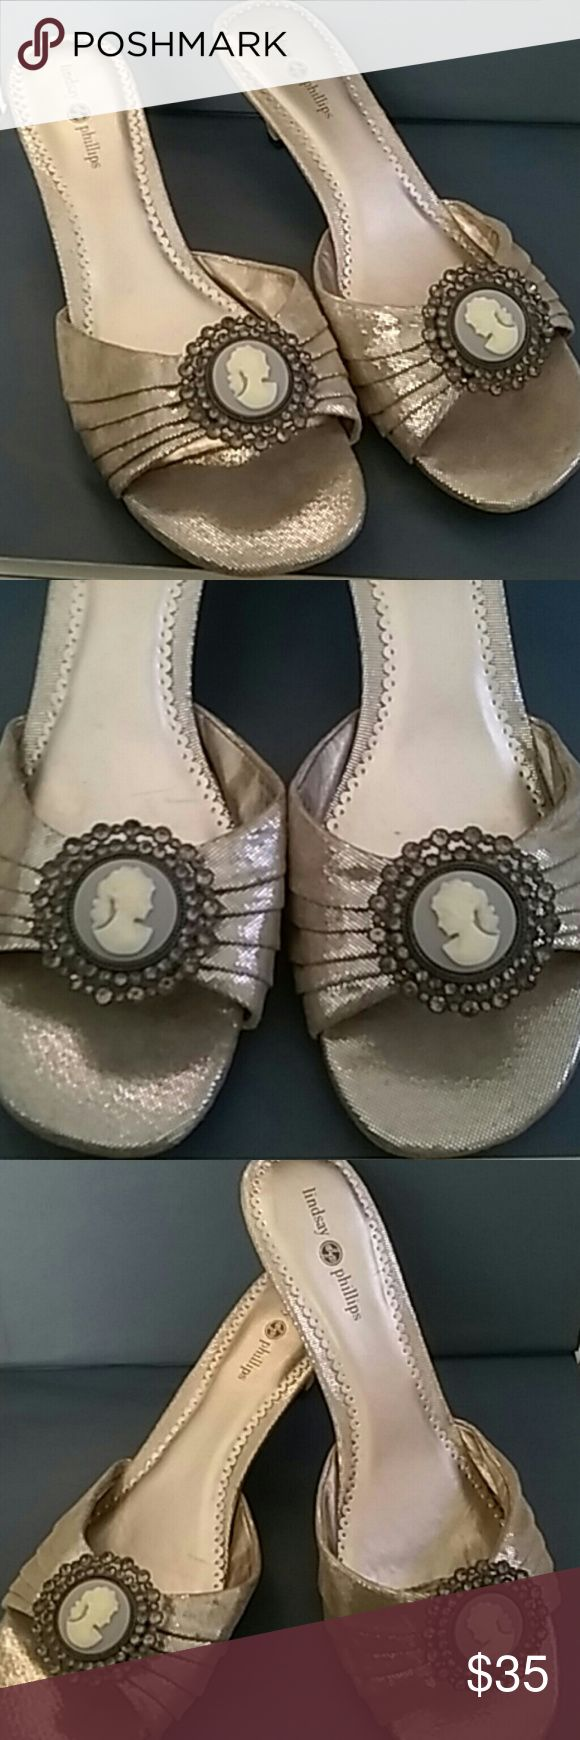 LINDSAY PHILLIPS CHAMPAGNE CAMEO ACCENT SHOES LINDSAY PHILLIPS LOVELY METALLIC CHAMPAGNE KITTEN HEELS WITH DUSTY BLUE CAMEO ACCENTS FRAMED IN JEWELS. SO FEMININE AND ROMANTIC. SIZE 9 Lindsay Phillips Shoes